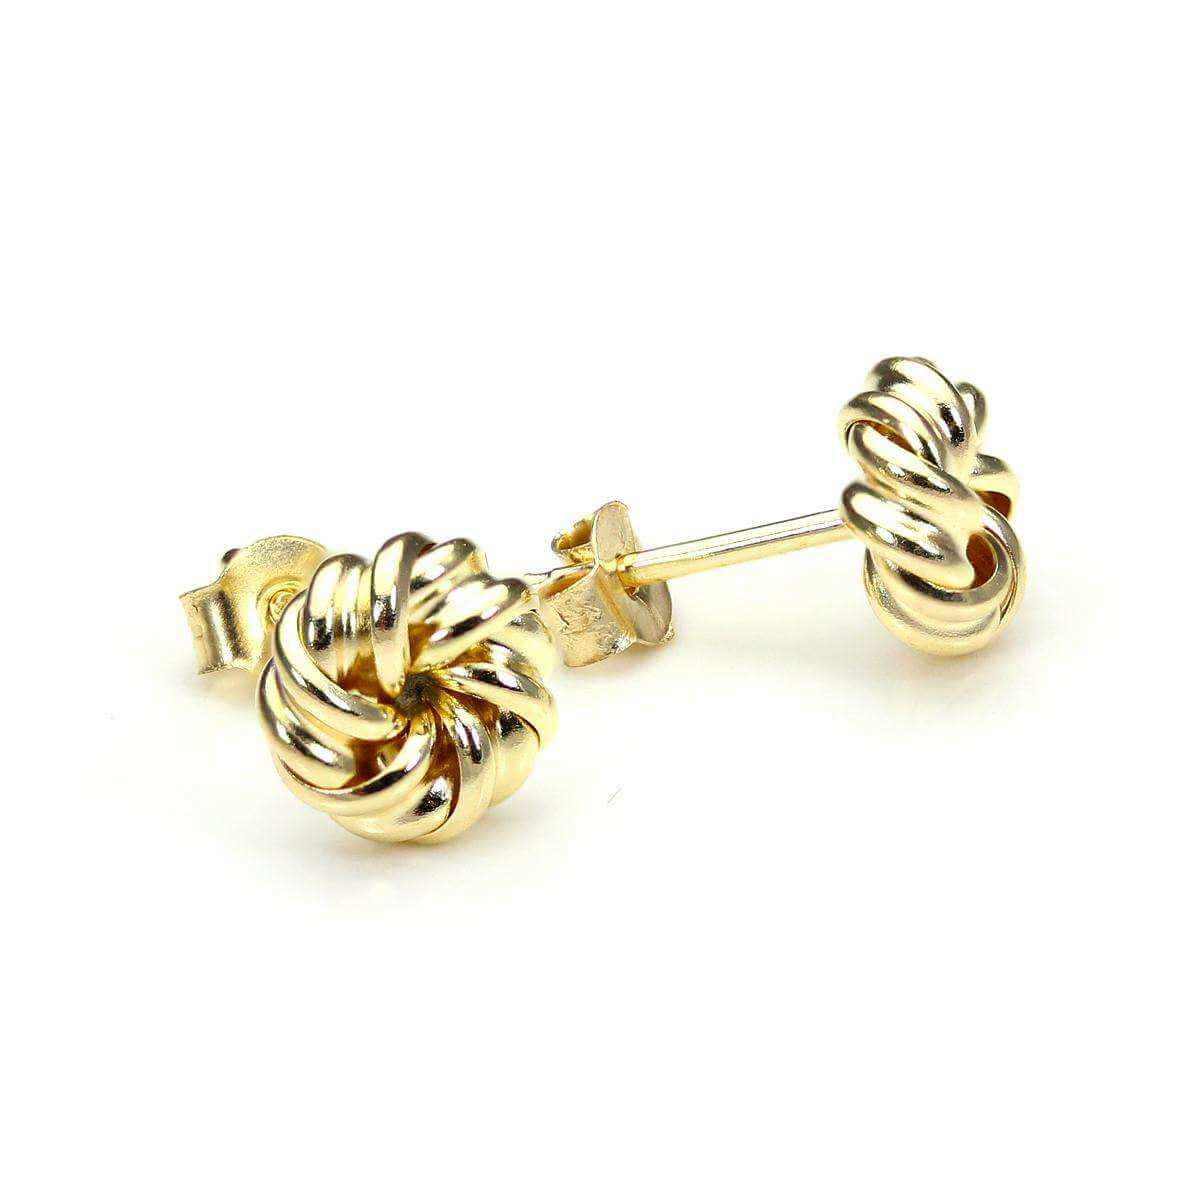 9ct Yellow Gold 6mm Tight Knot Stud Earrings